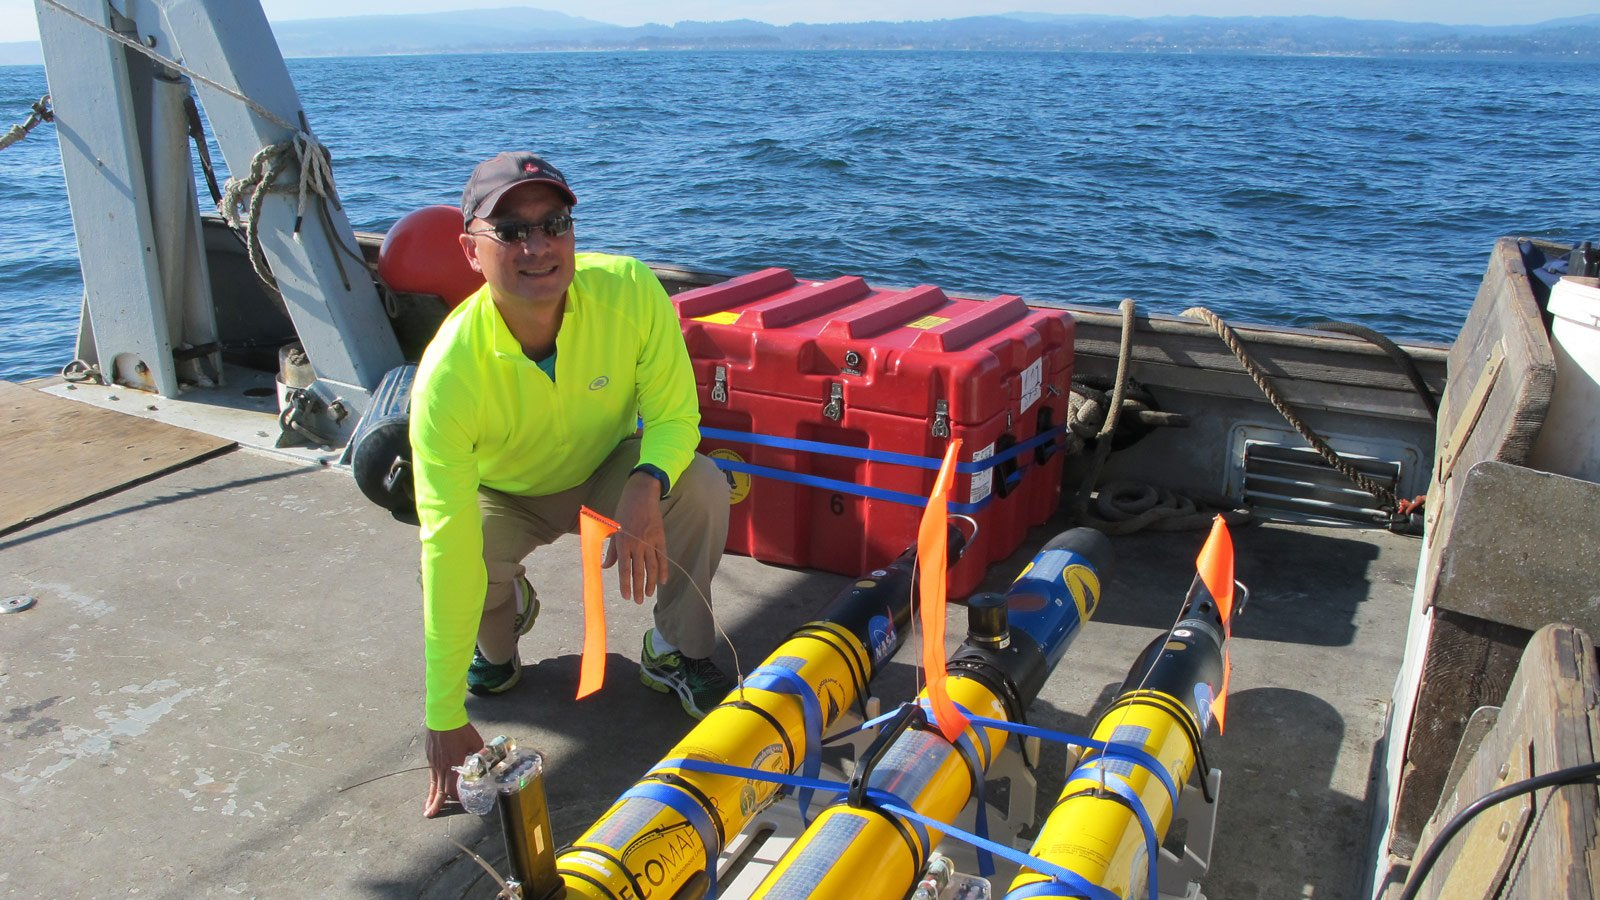 JPL's Steve Chien with several of the underwater drones used in a research project earlier this year. Chien, along with his research collaborators, are developing artificial intelligence for these drones. Image Credit: NASA/JPL-Caltech.